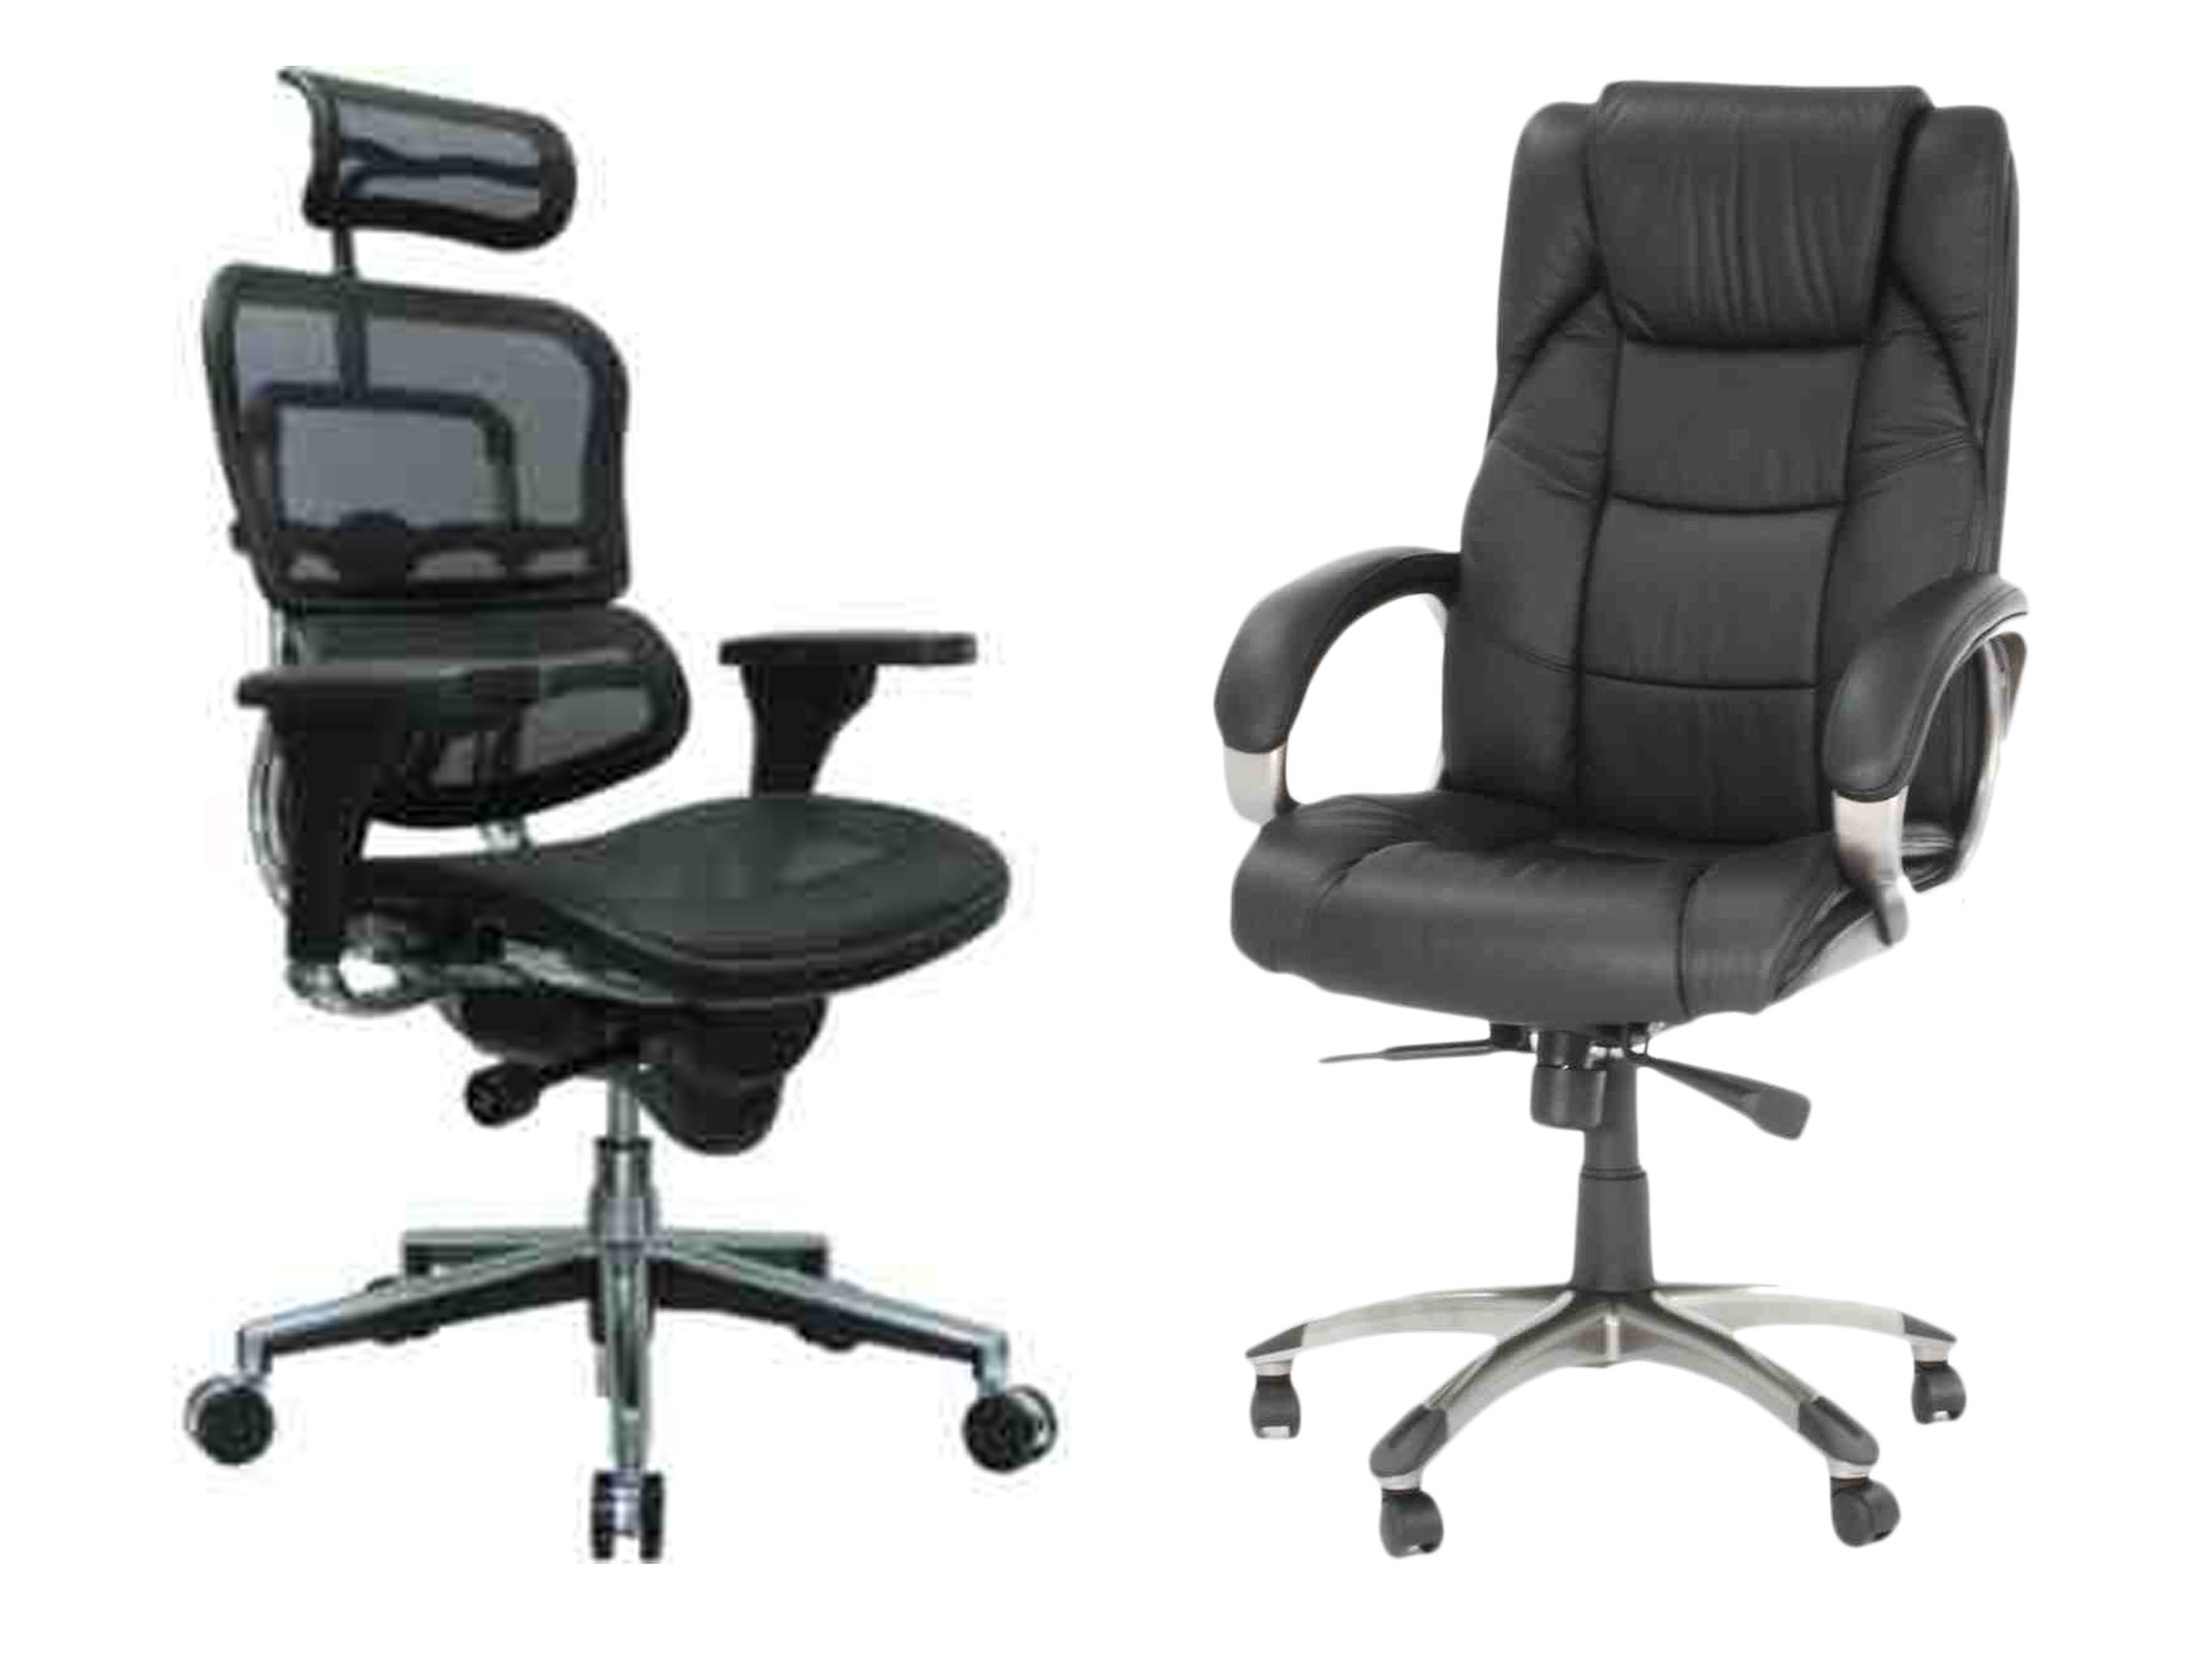 mesh vs leather chair which one is right for you comfy office chair the ultimate guide to. Black Bedroom Furniture Sets. Home Design Ideas